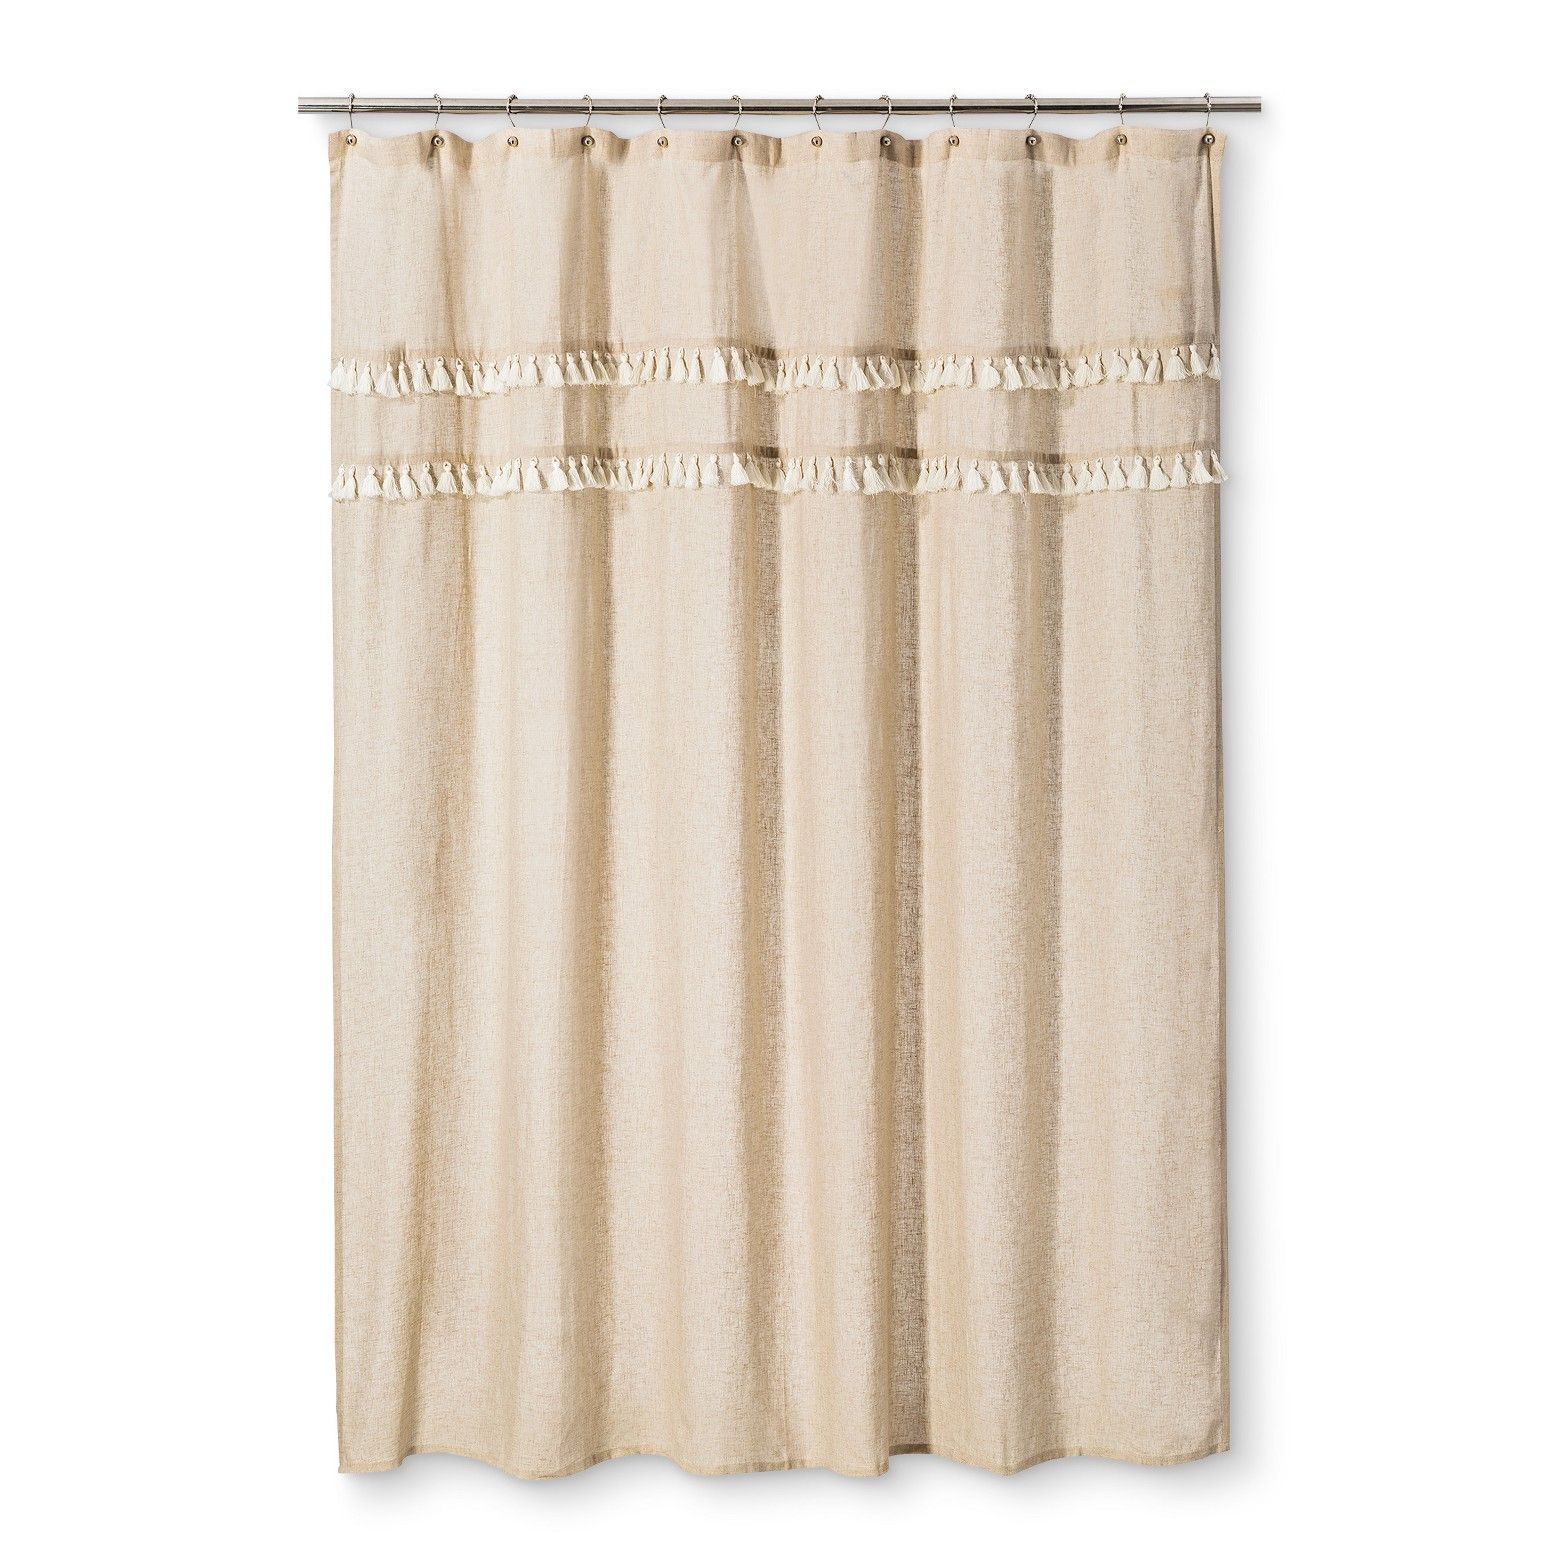 $20 This Threshold Solid Browen Linen Shower Curtain Has A